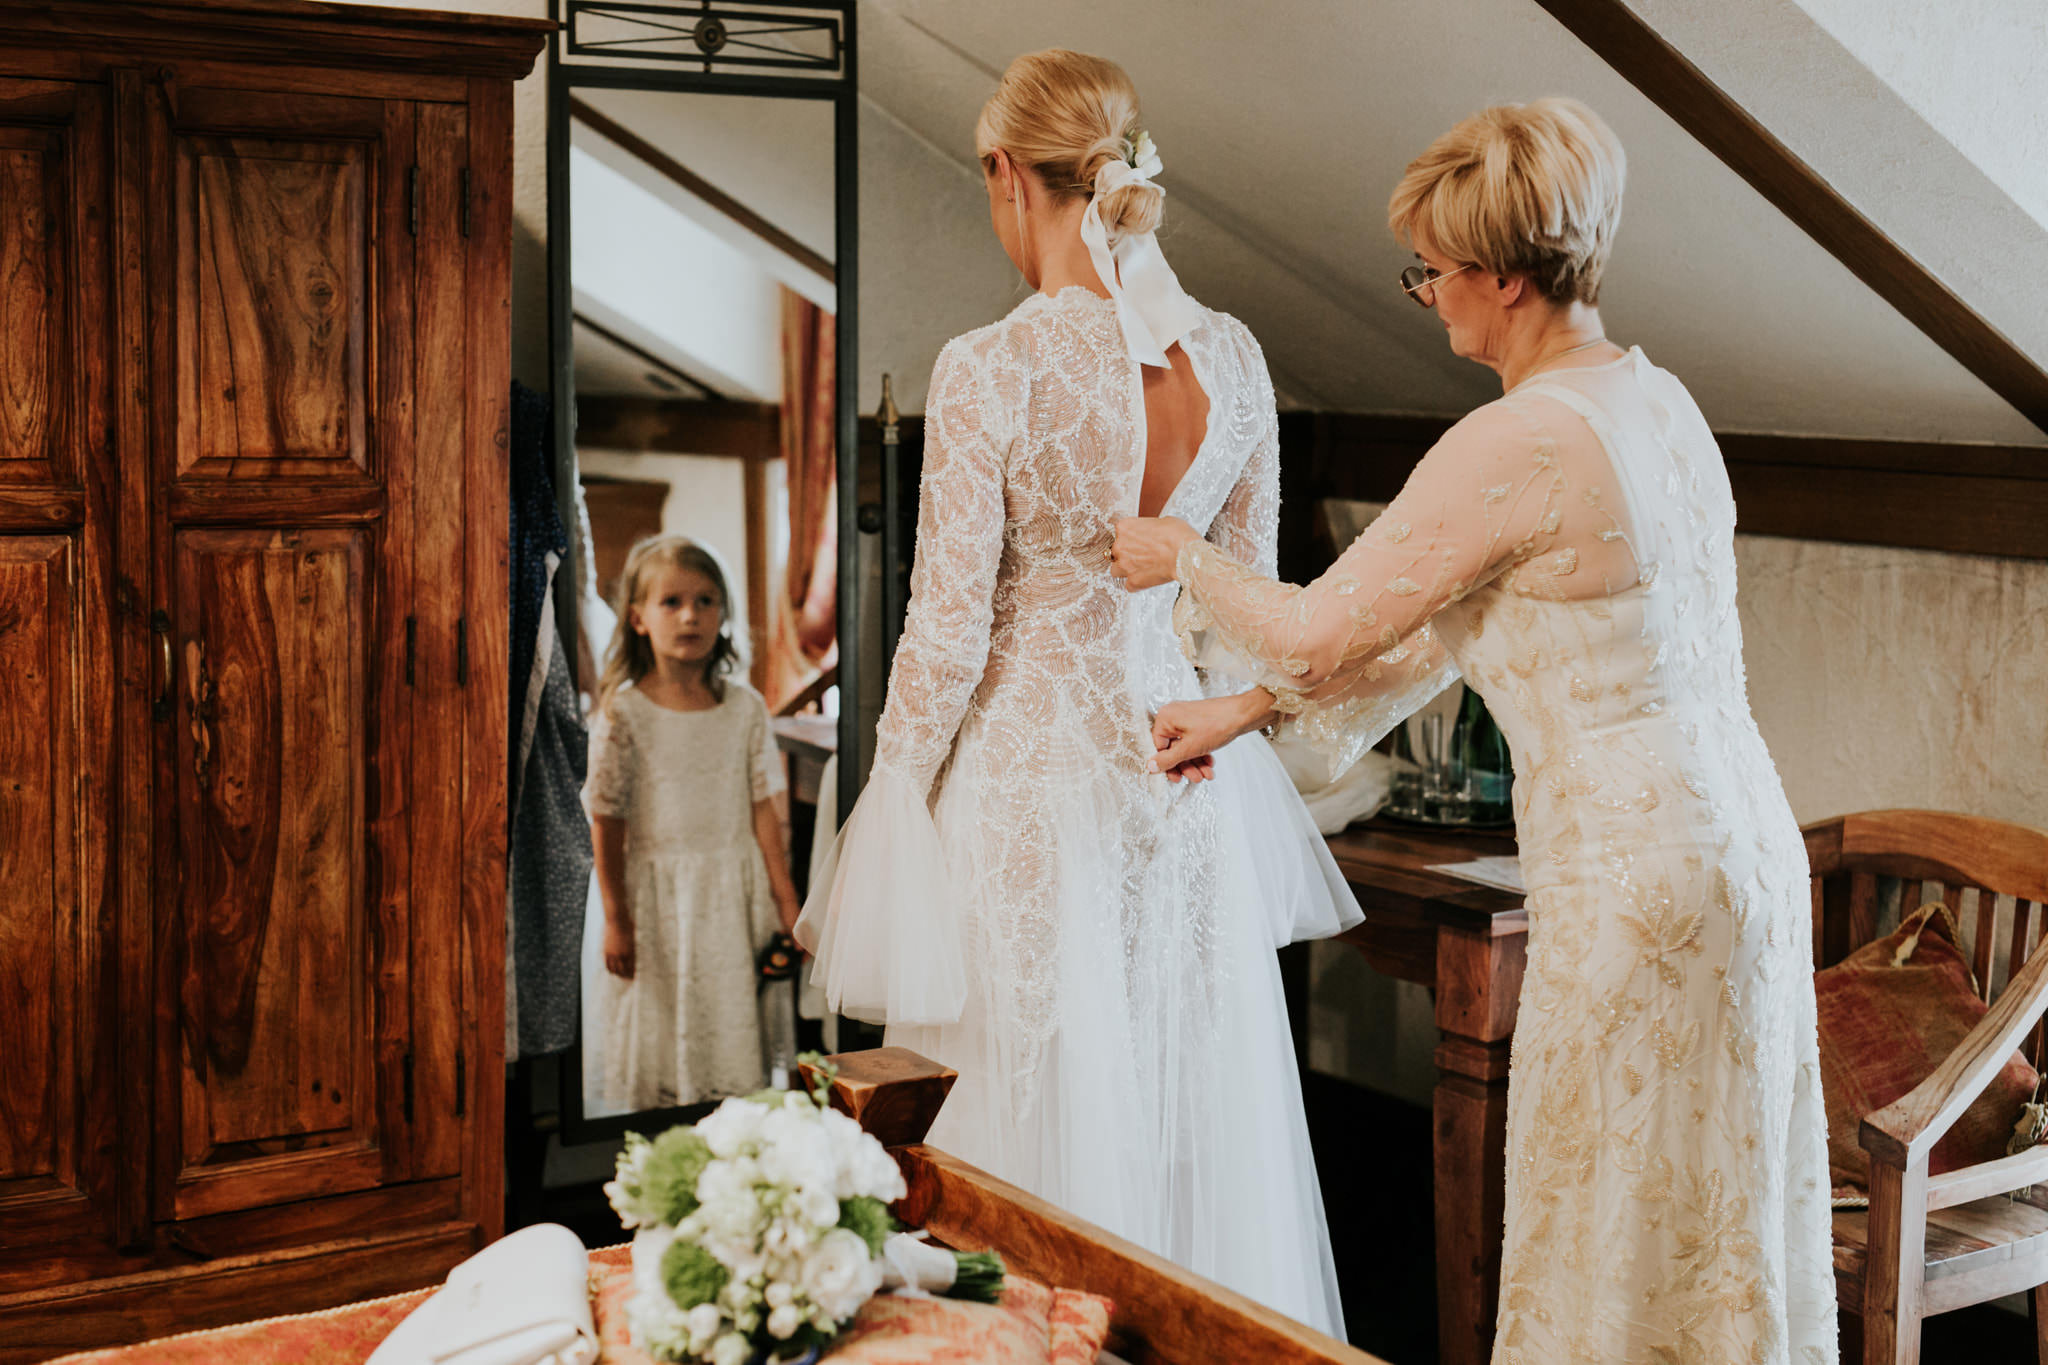 the bride's mother helps the bride to get into her wedding dress, while the bride's daughter is flashed by the beauty of her mother